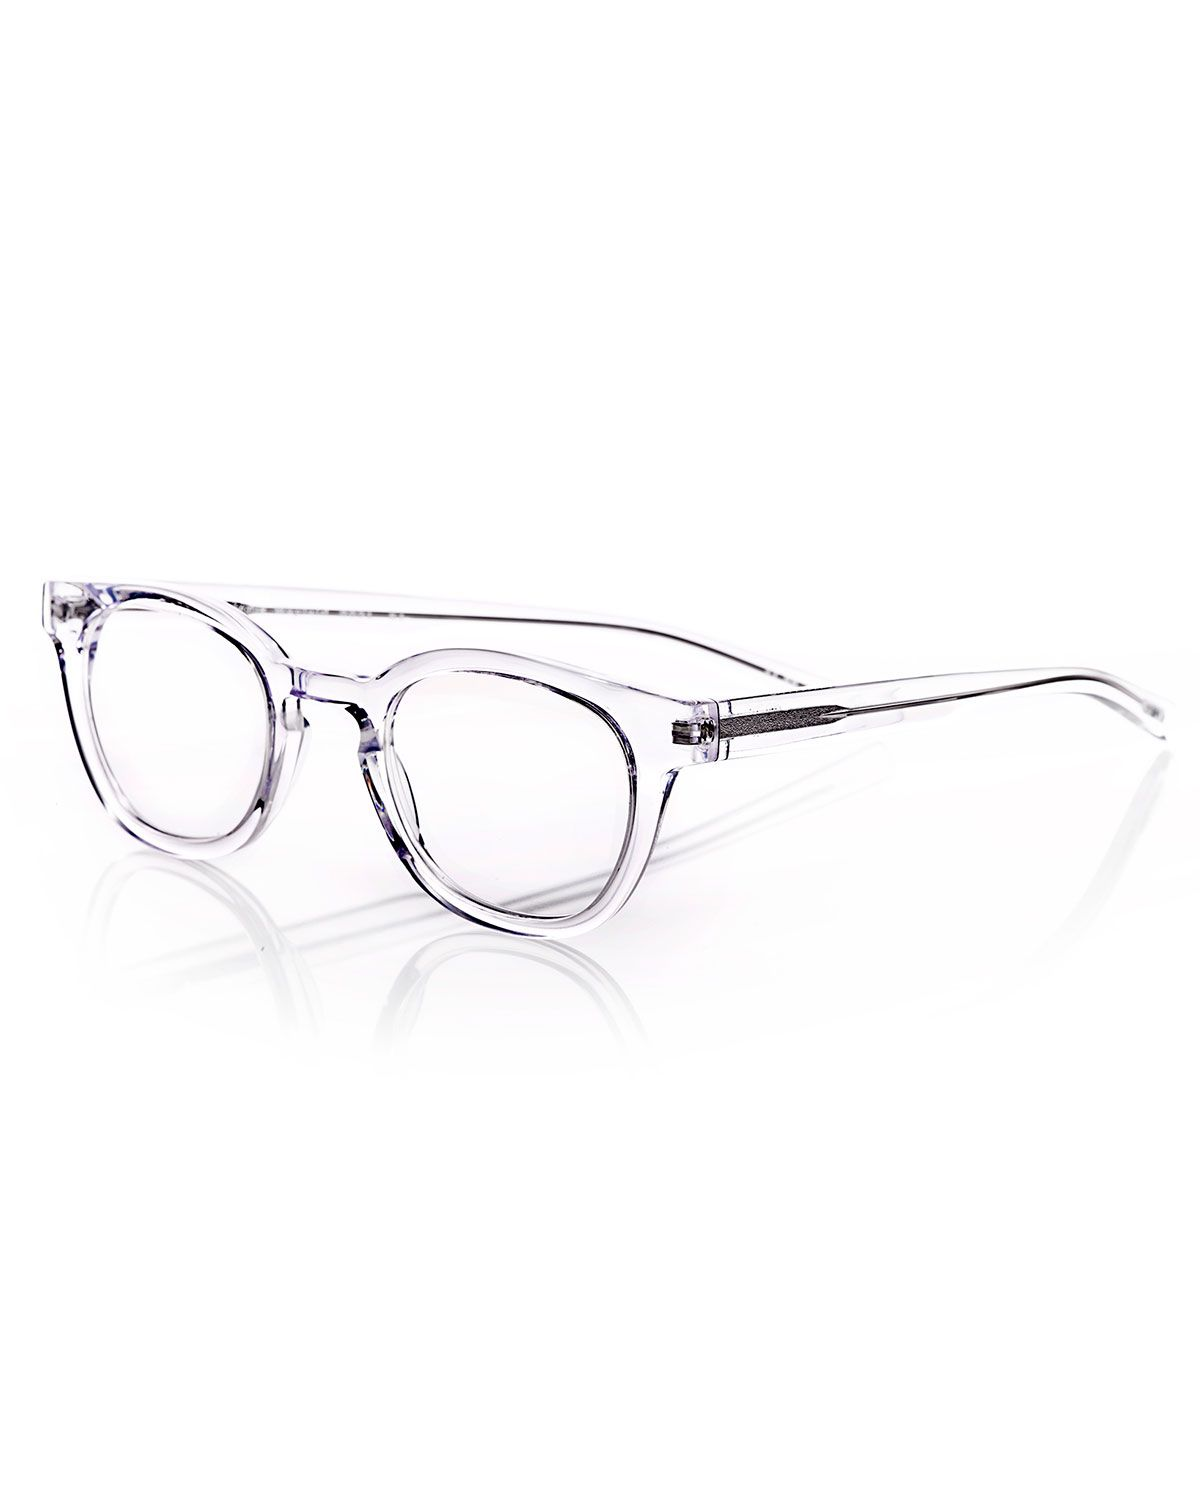 6619b405ebc2 EYEBOBS Stylish Reading Glasses, Clear Check, Optical Frames, Glasses Frames,  Eye Glasses